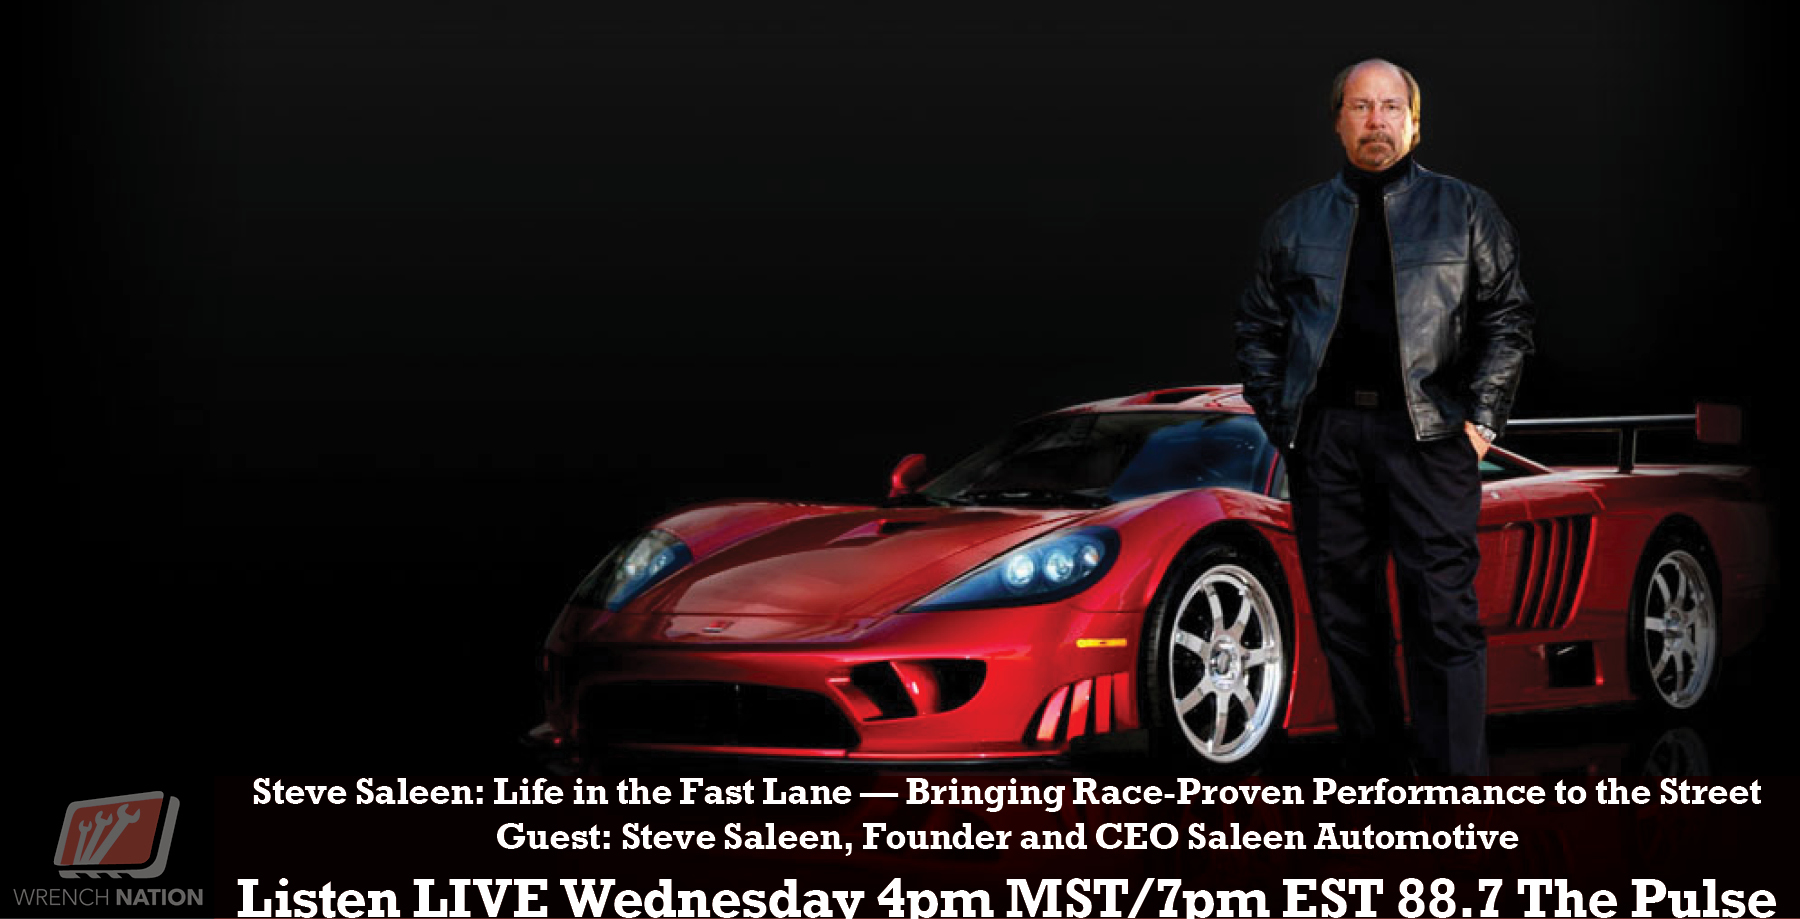 #167 Steve Saleen: Bringing Race-Proven Performance to the Street